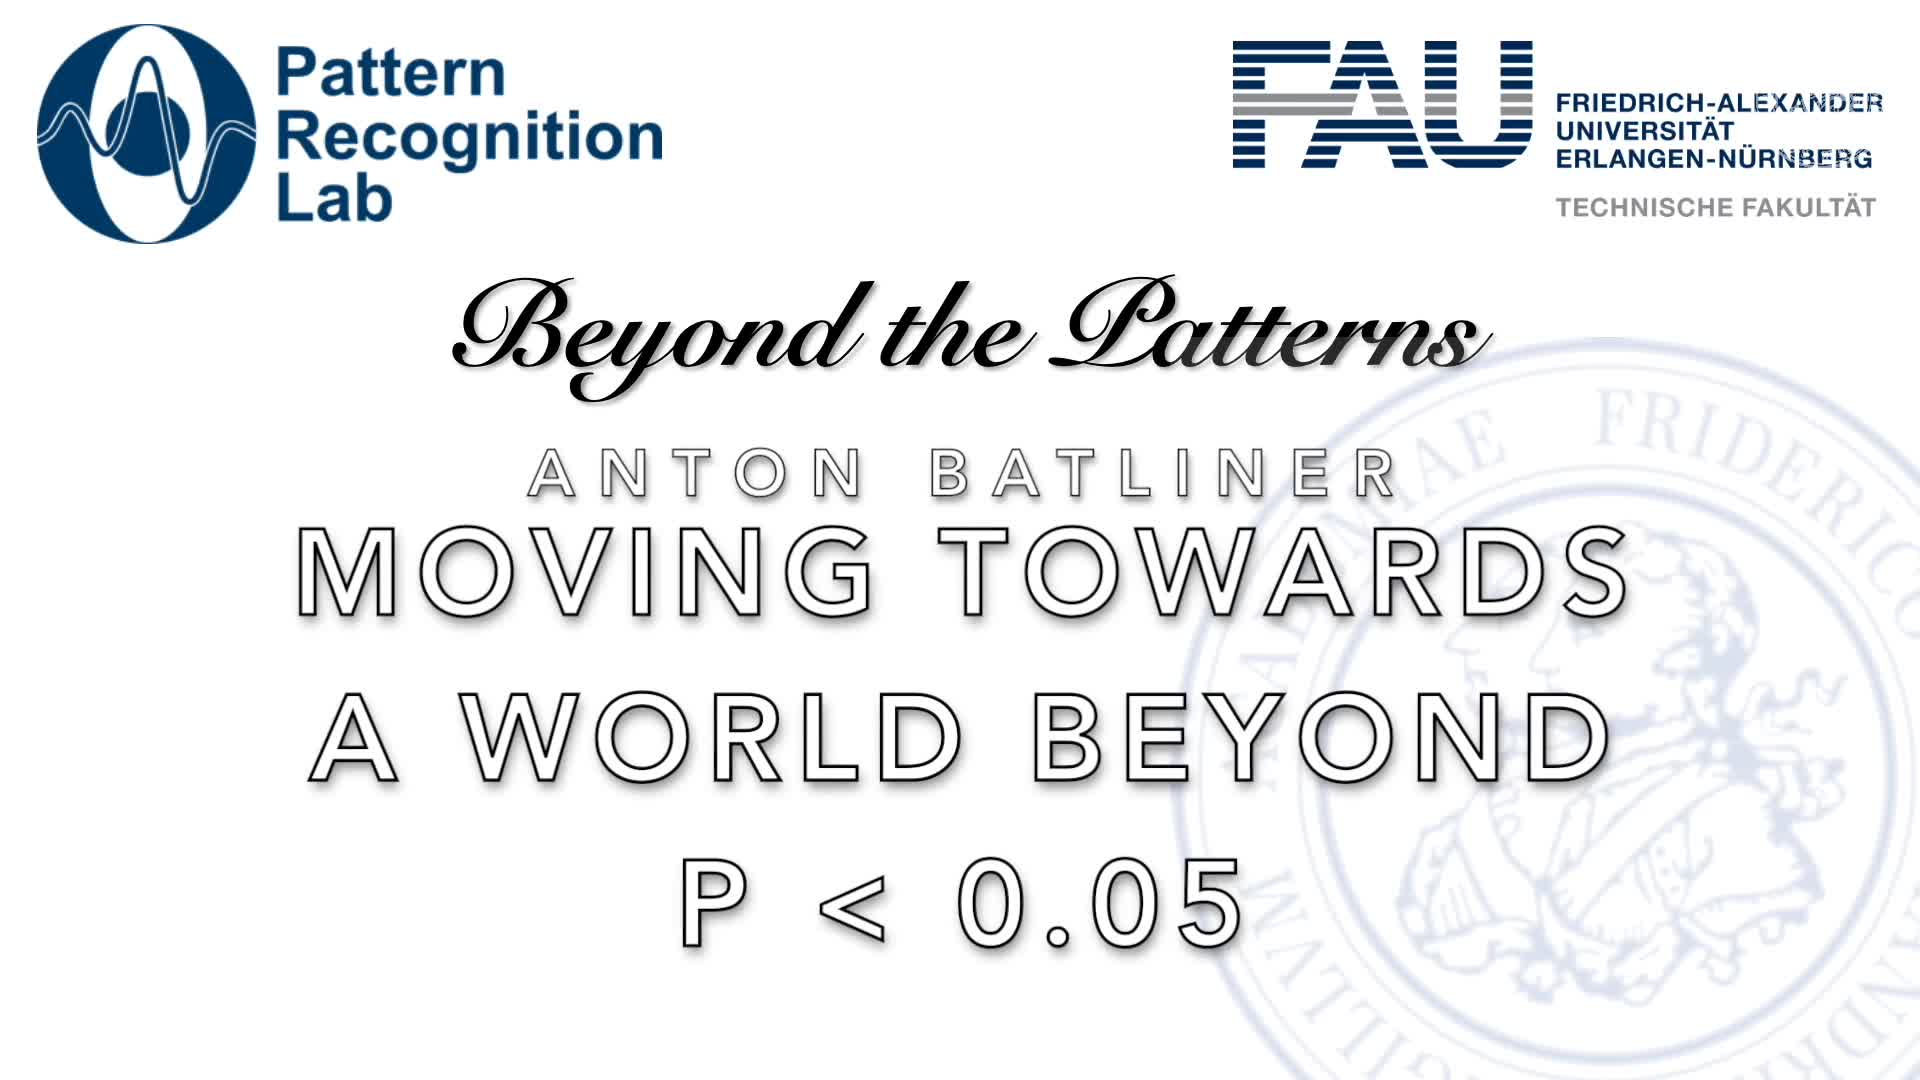 Beyond the Patterns - Anton Batliner - Moving to a World Beyond p < 0.05 preview image